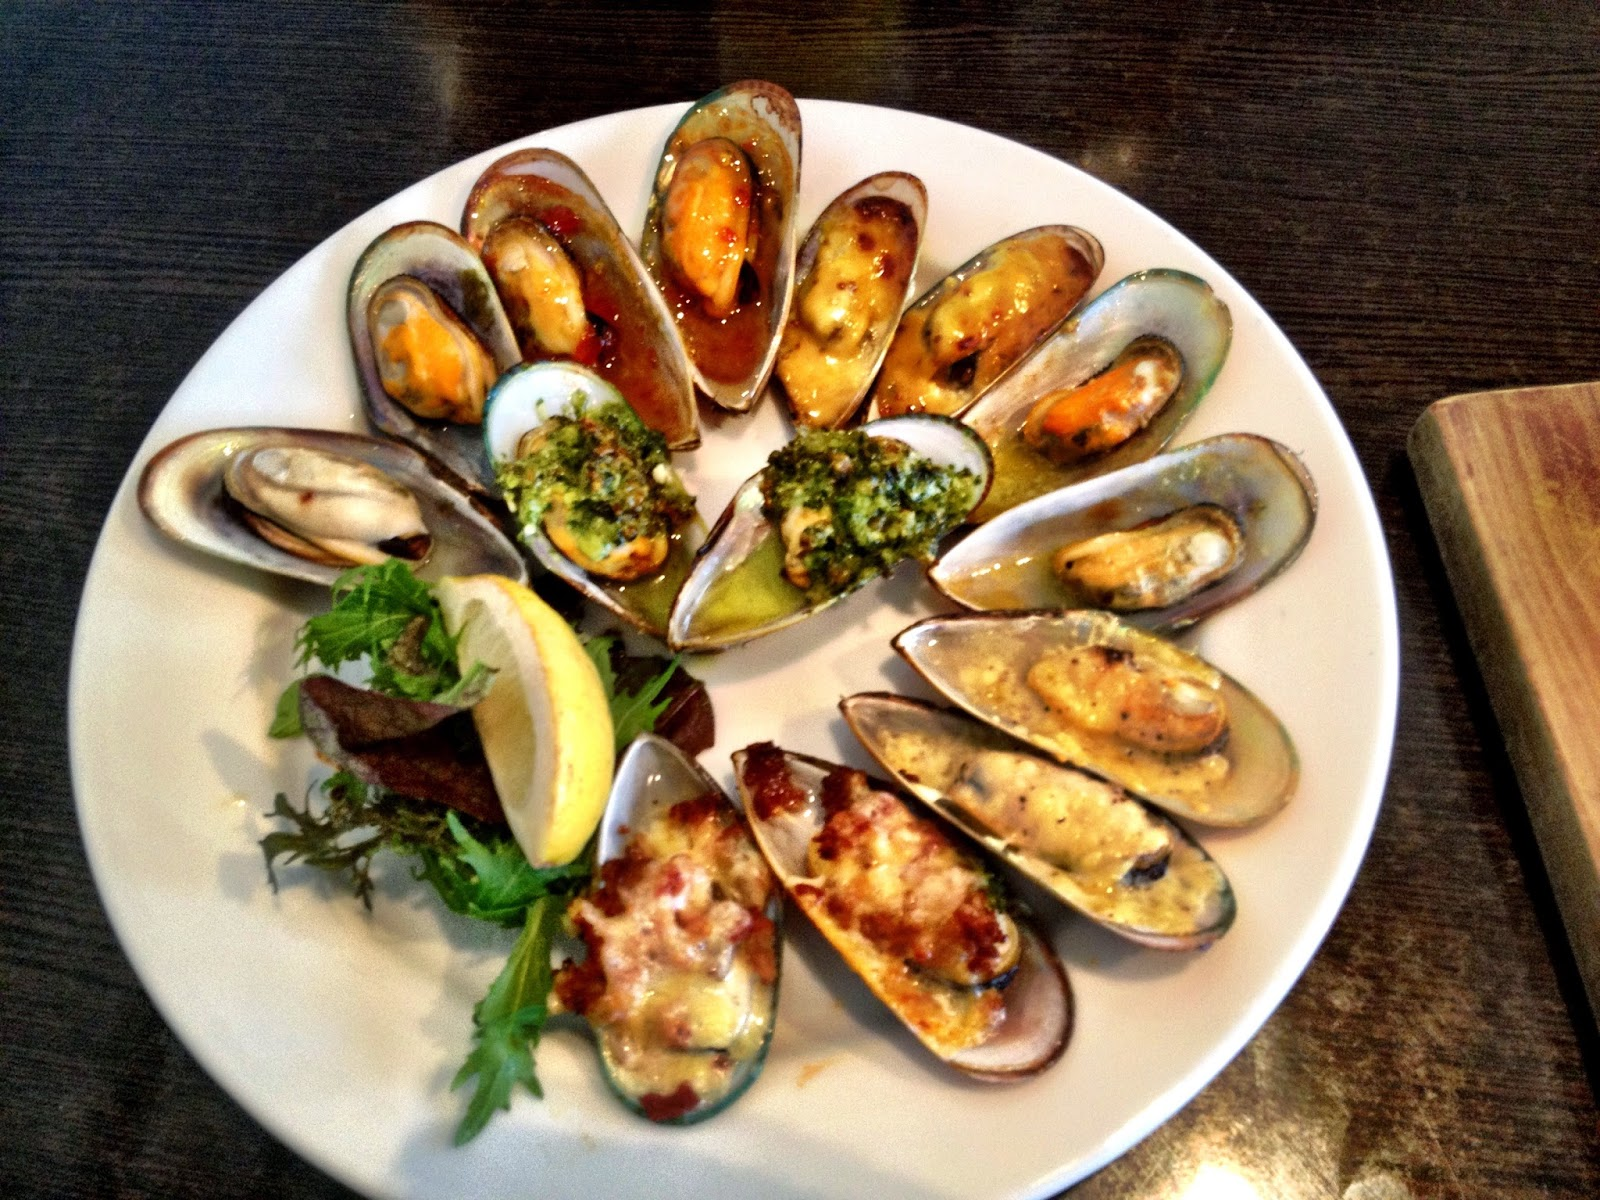 Havelock green shell mussels - New Zealand